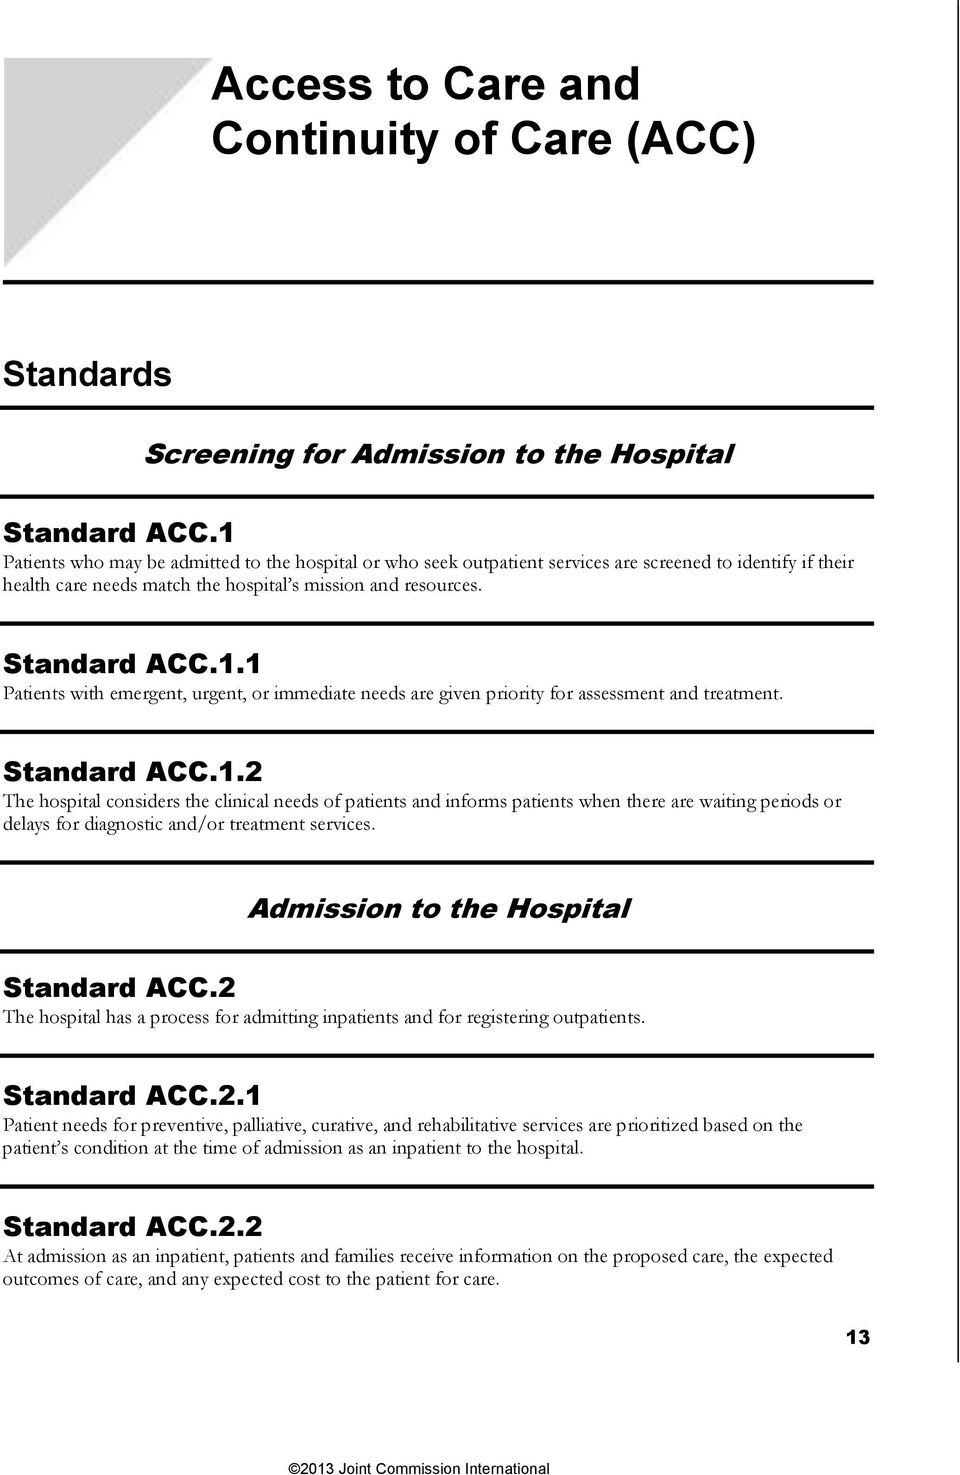 Standard ACC.1.2 The hospital considers the clinical needs of patients and informs patients when there are waiting periods or delays for diagnostic and/or treatment services.